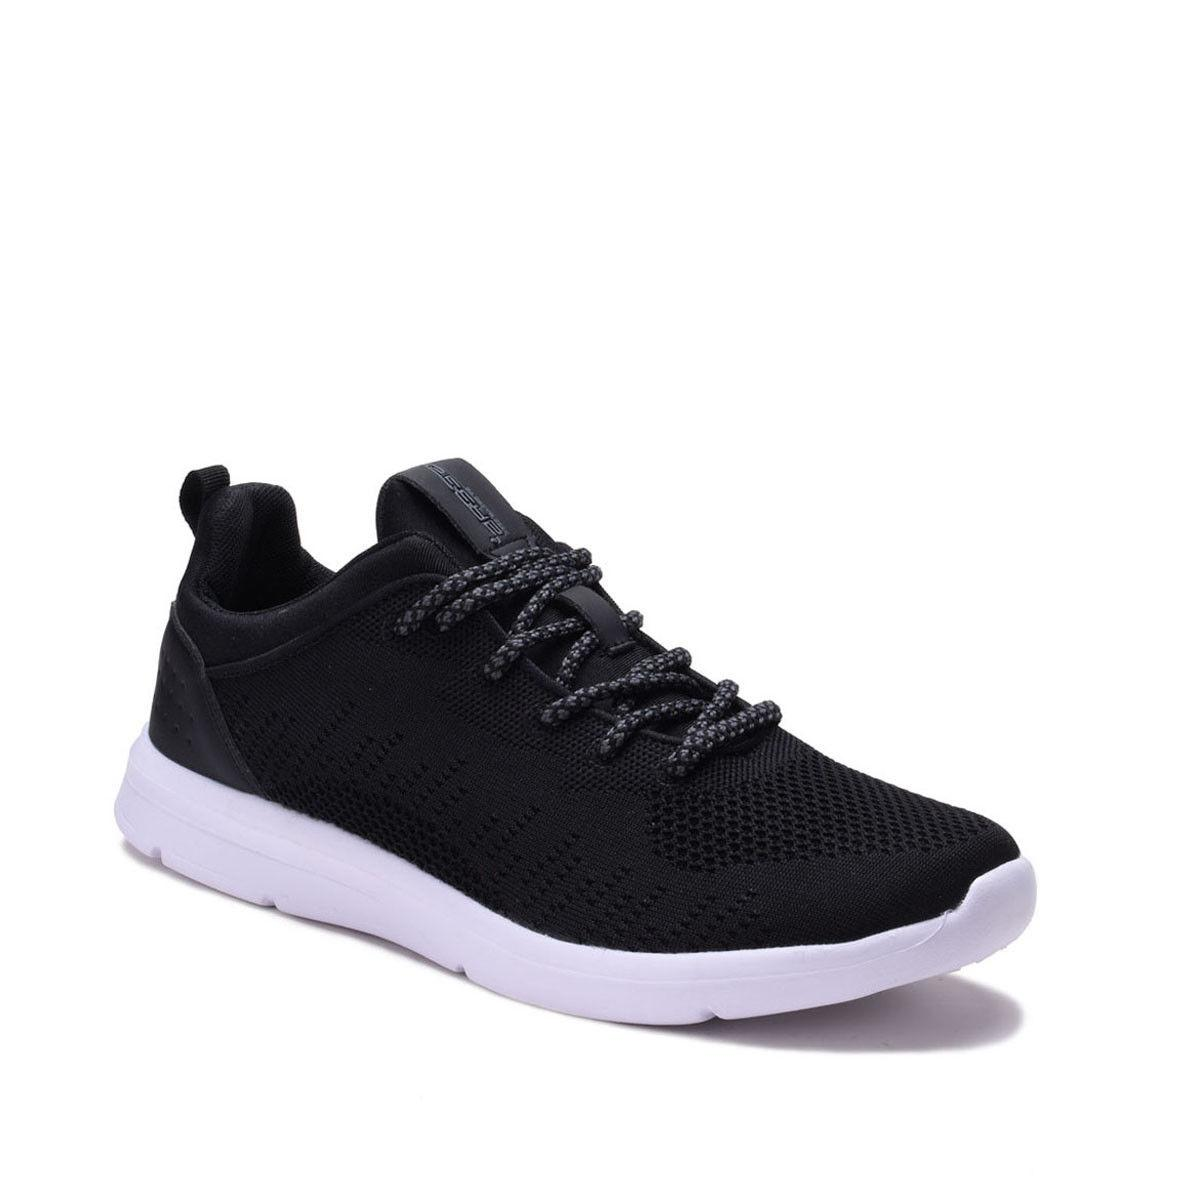 Mens Athletic Shoes Light Training Gym Sneakers